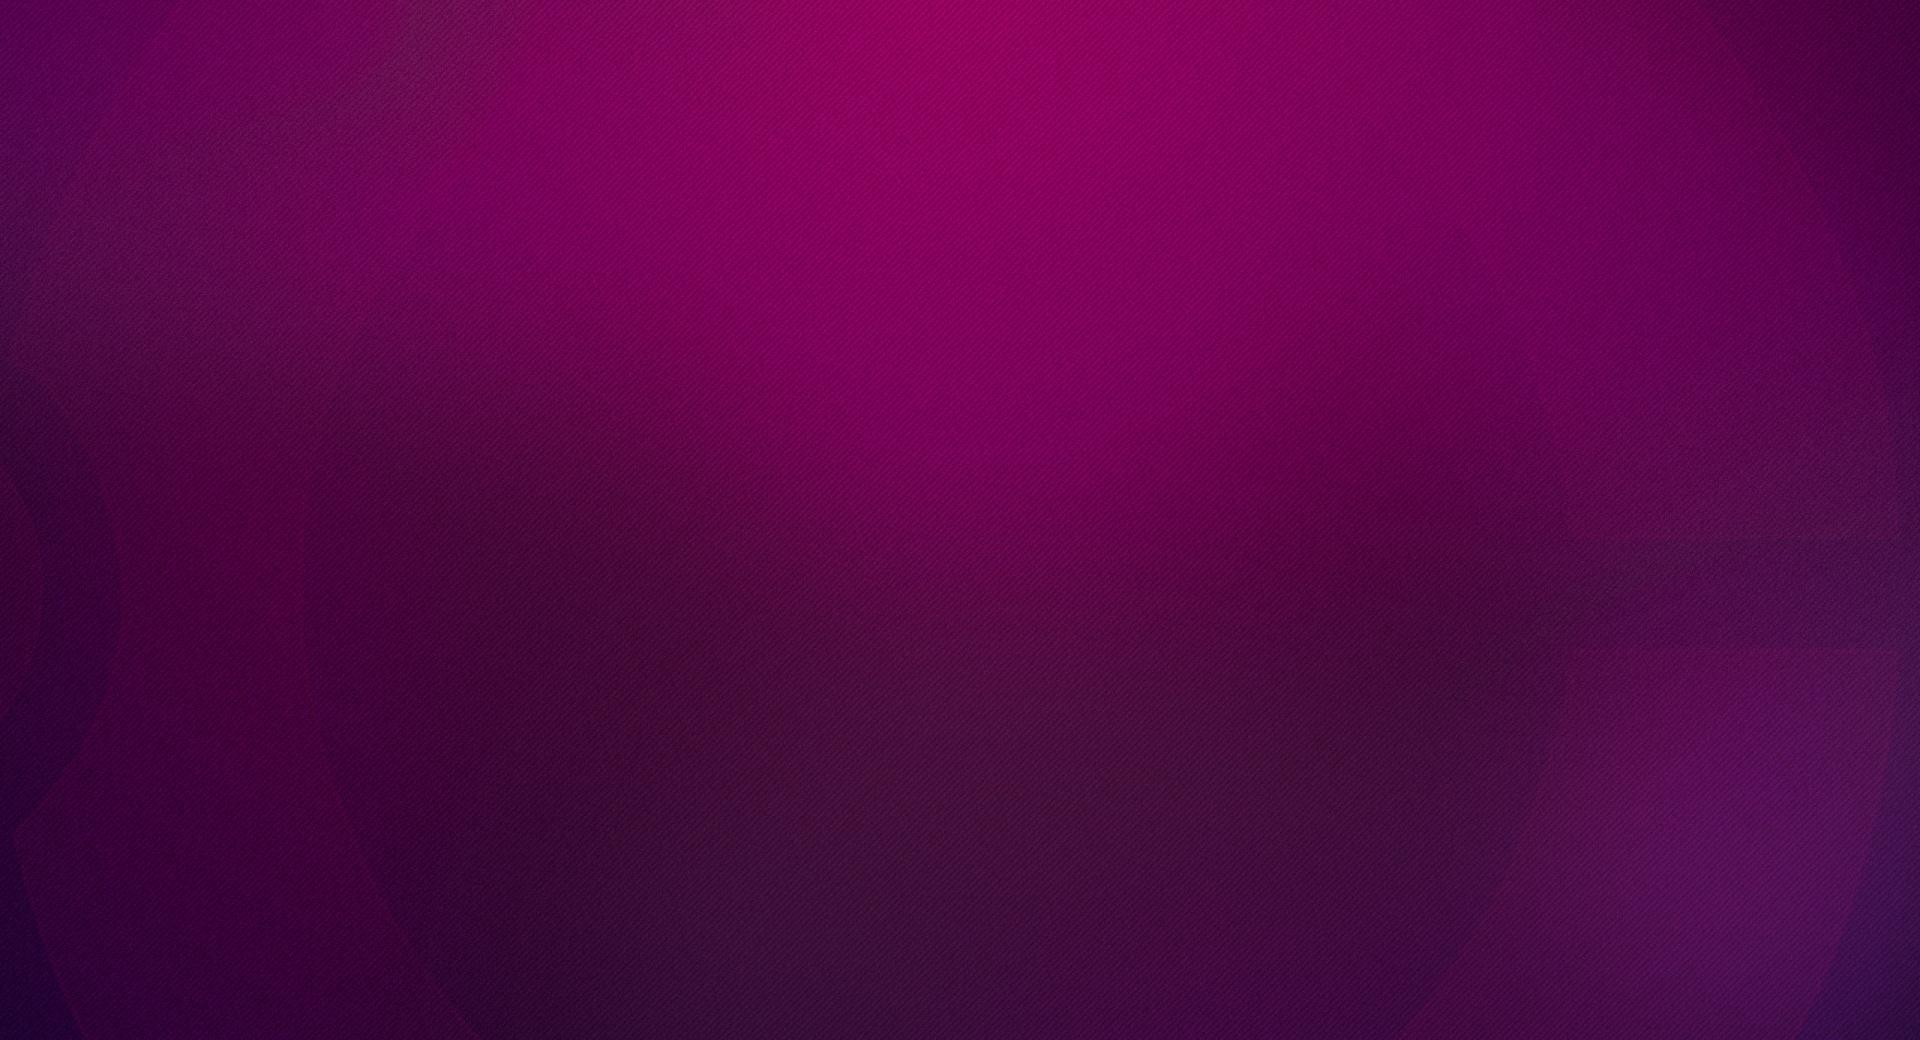 Plain Purple wallpapers HD quality